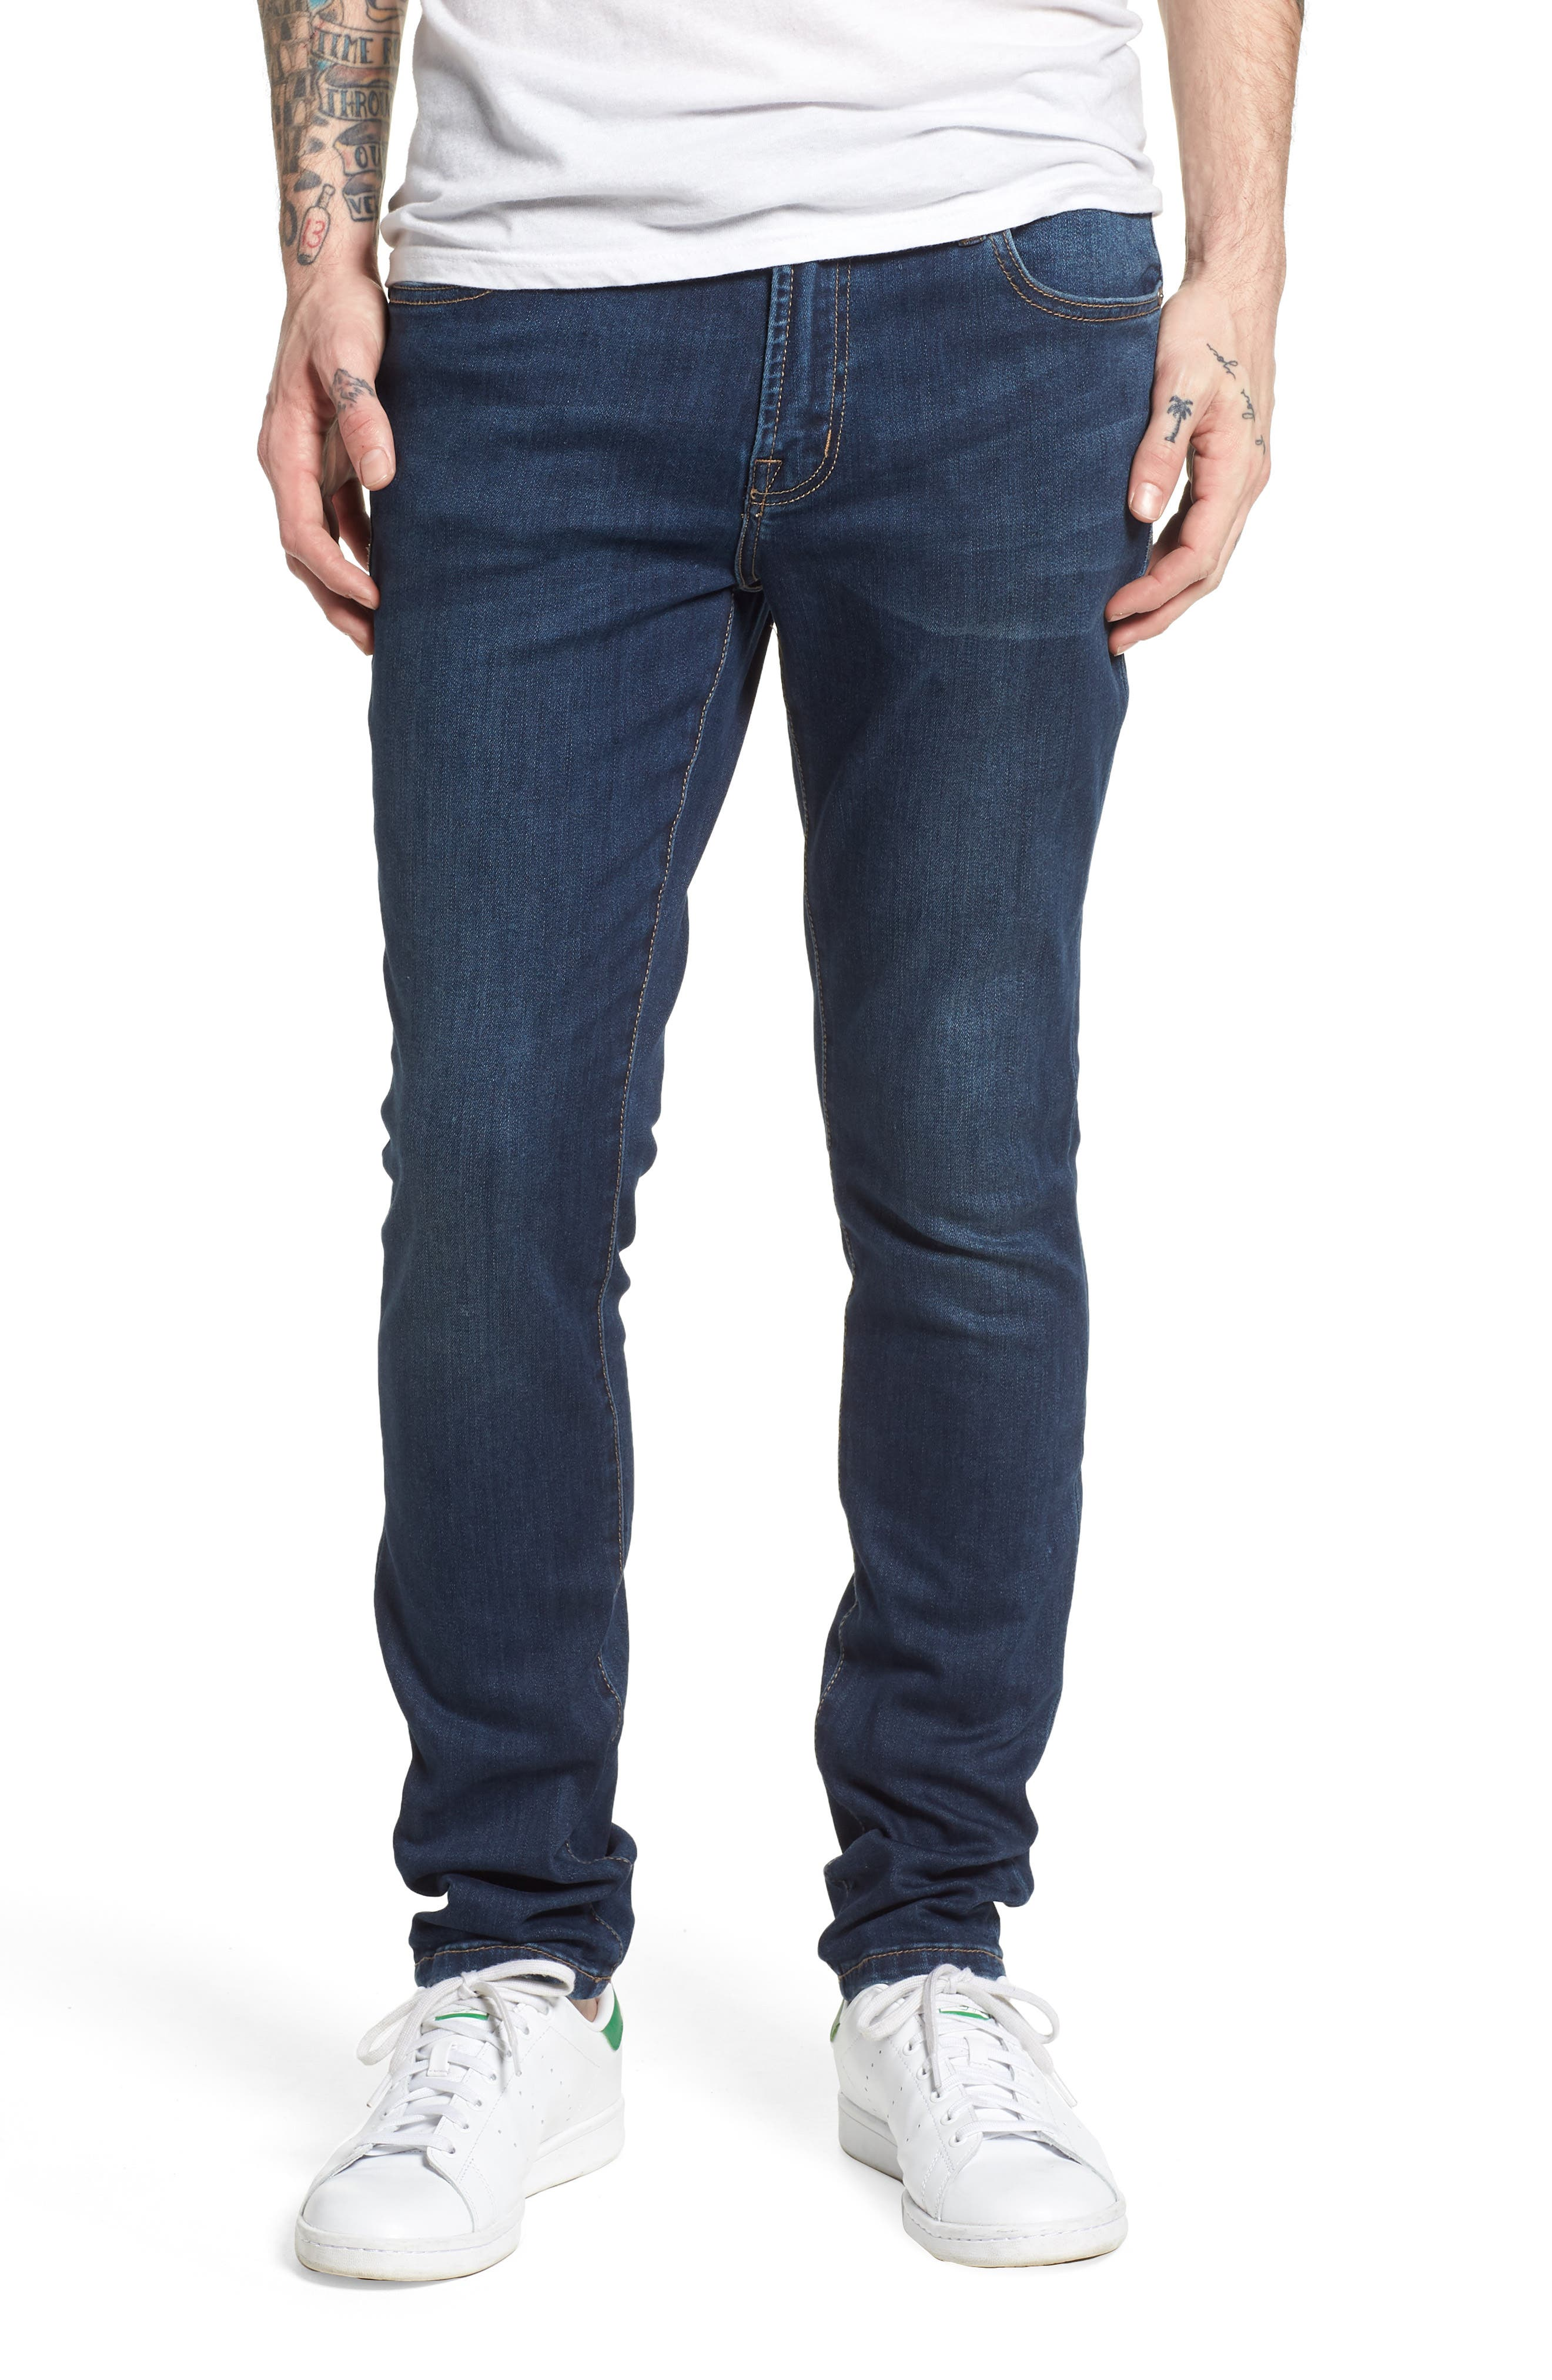 Jeans Co. Bond Skinny Fit Jeans,                         Main,                         color, CLADWELL DARK